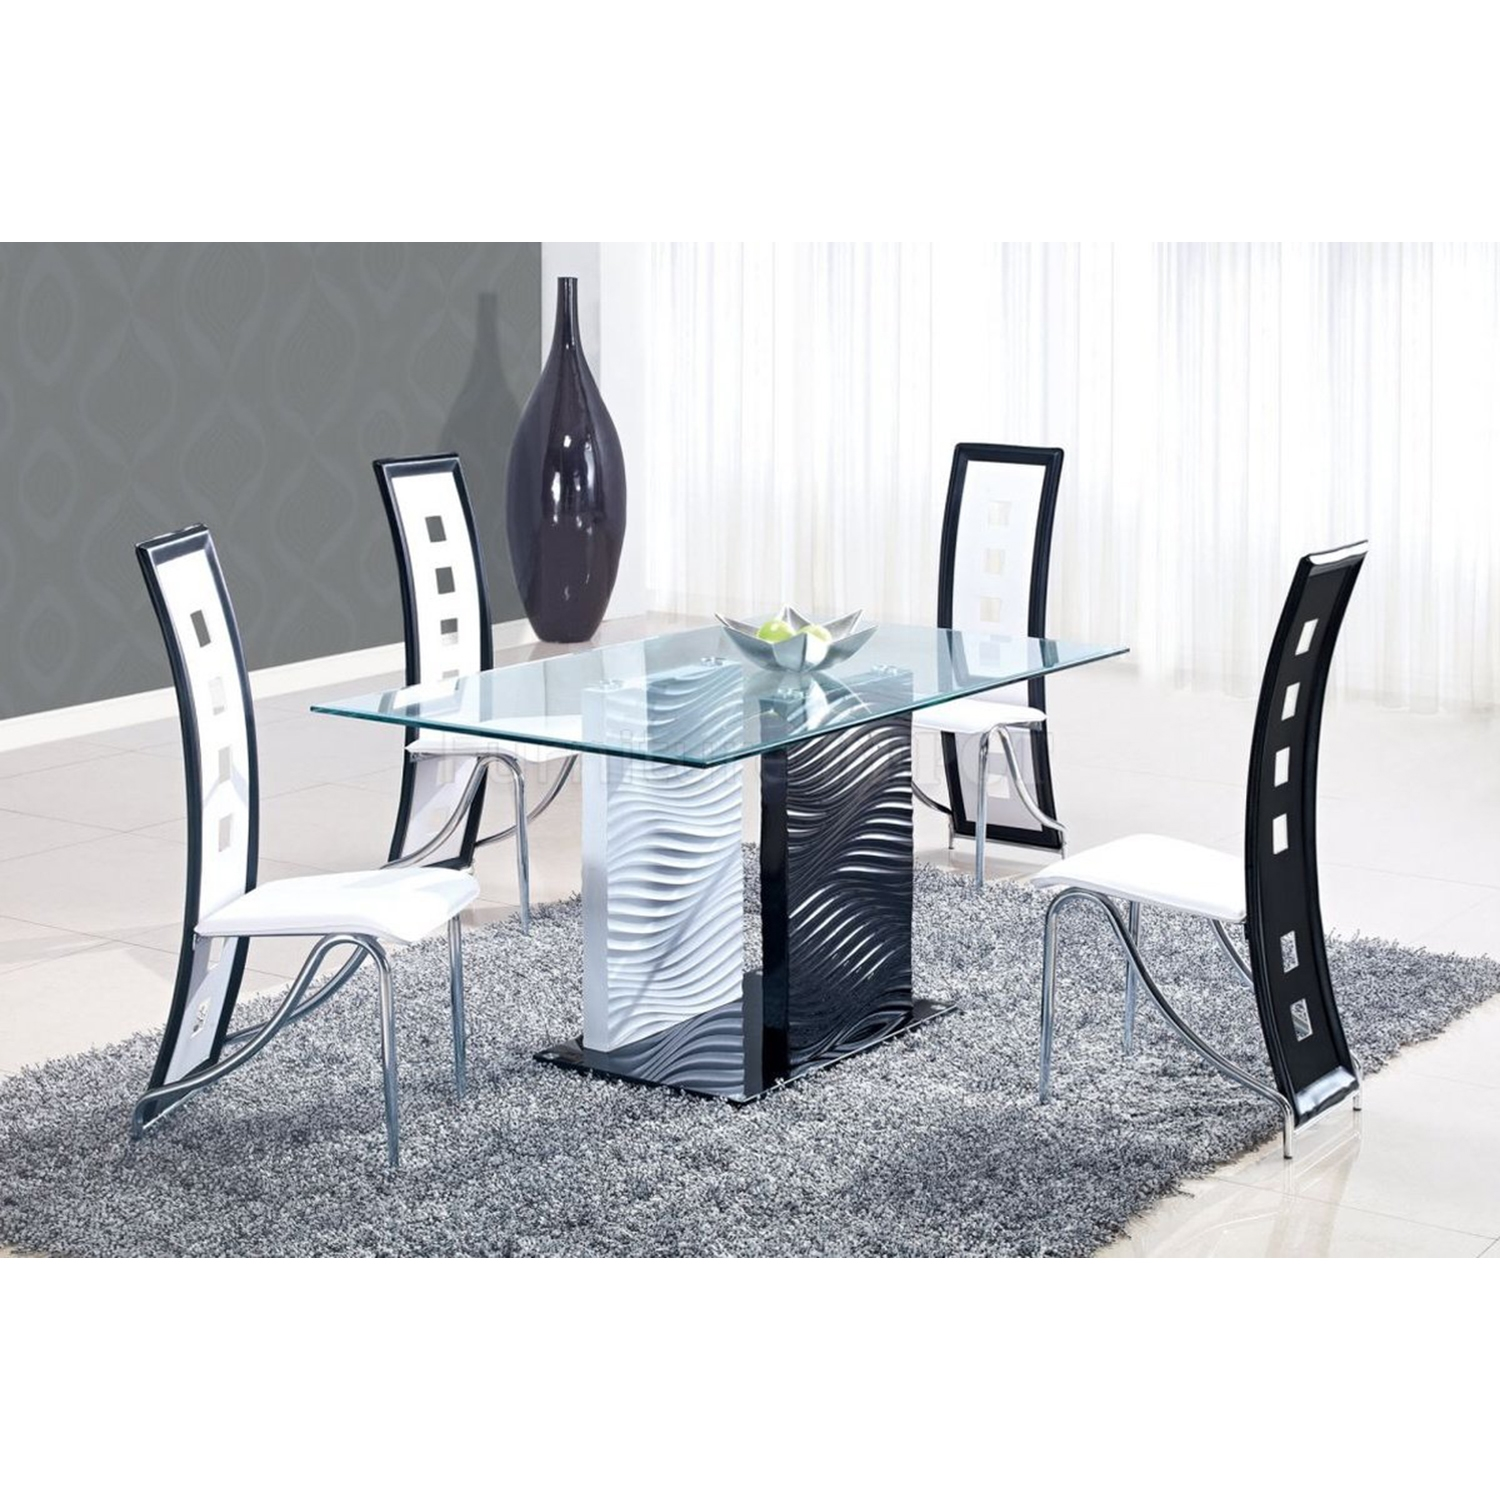 Dining Table - Clear and Black Glass, Black and White Legs - GLO-D1021DT